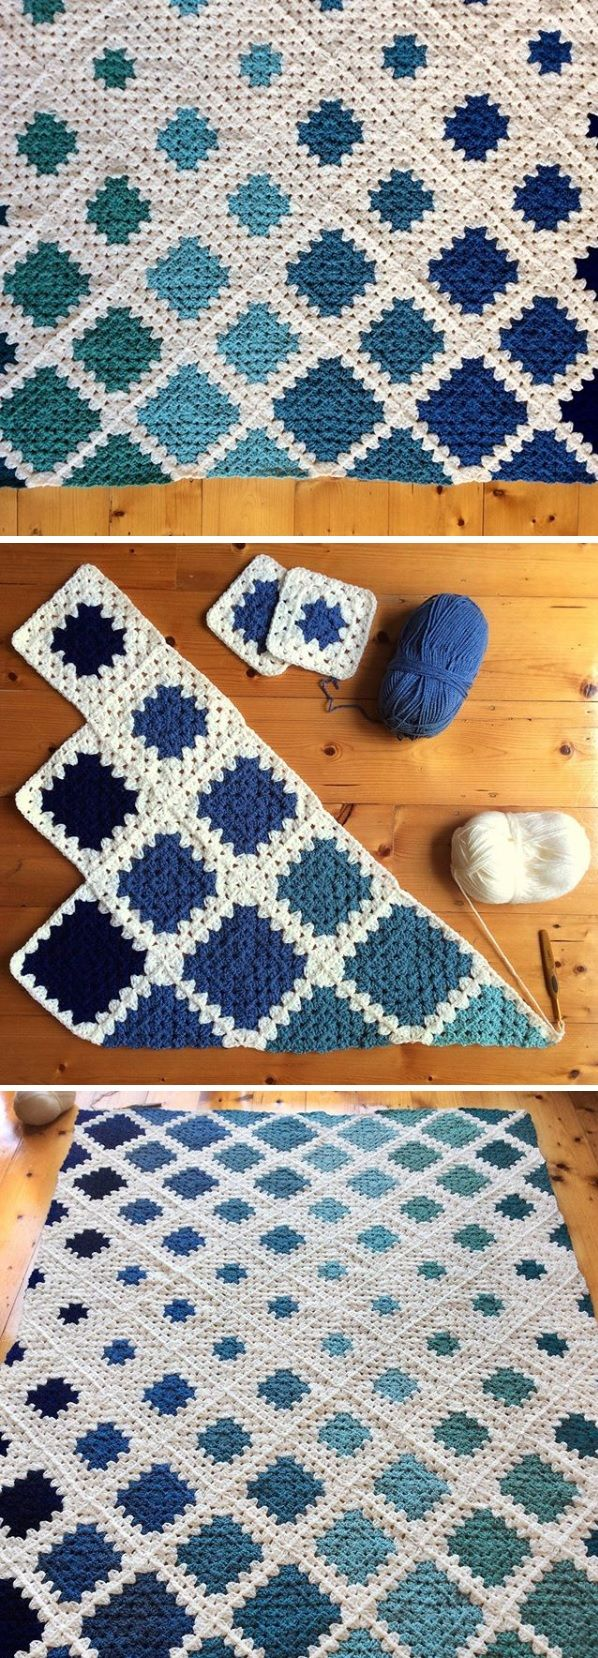 Square Motif Blanket Tutorial